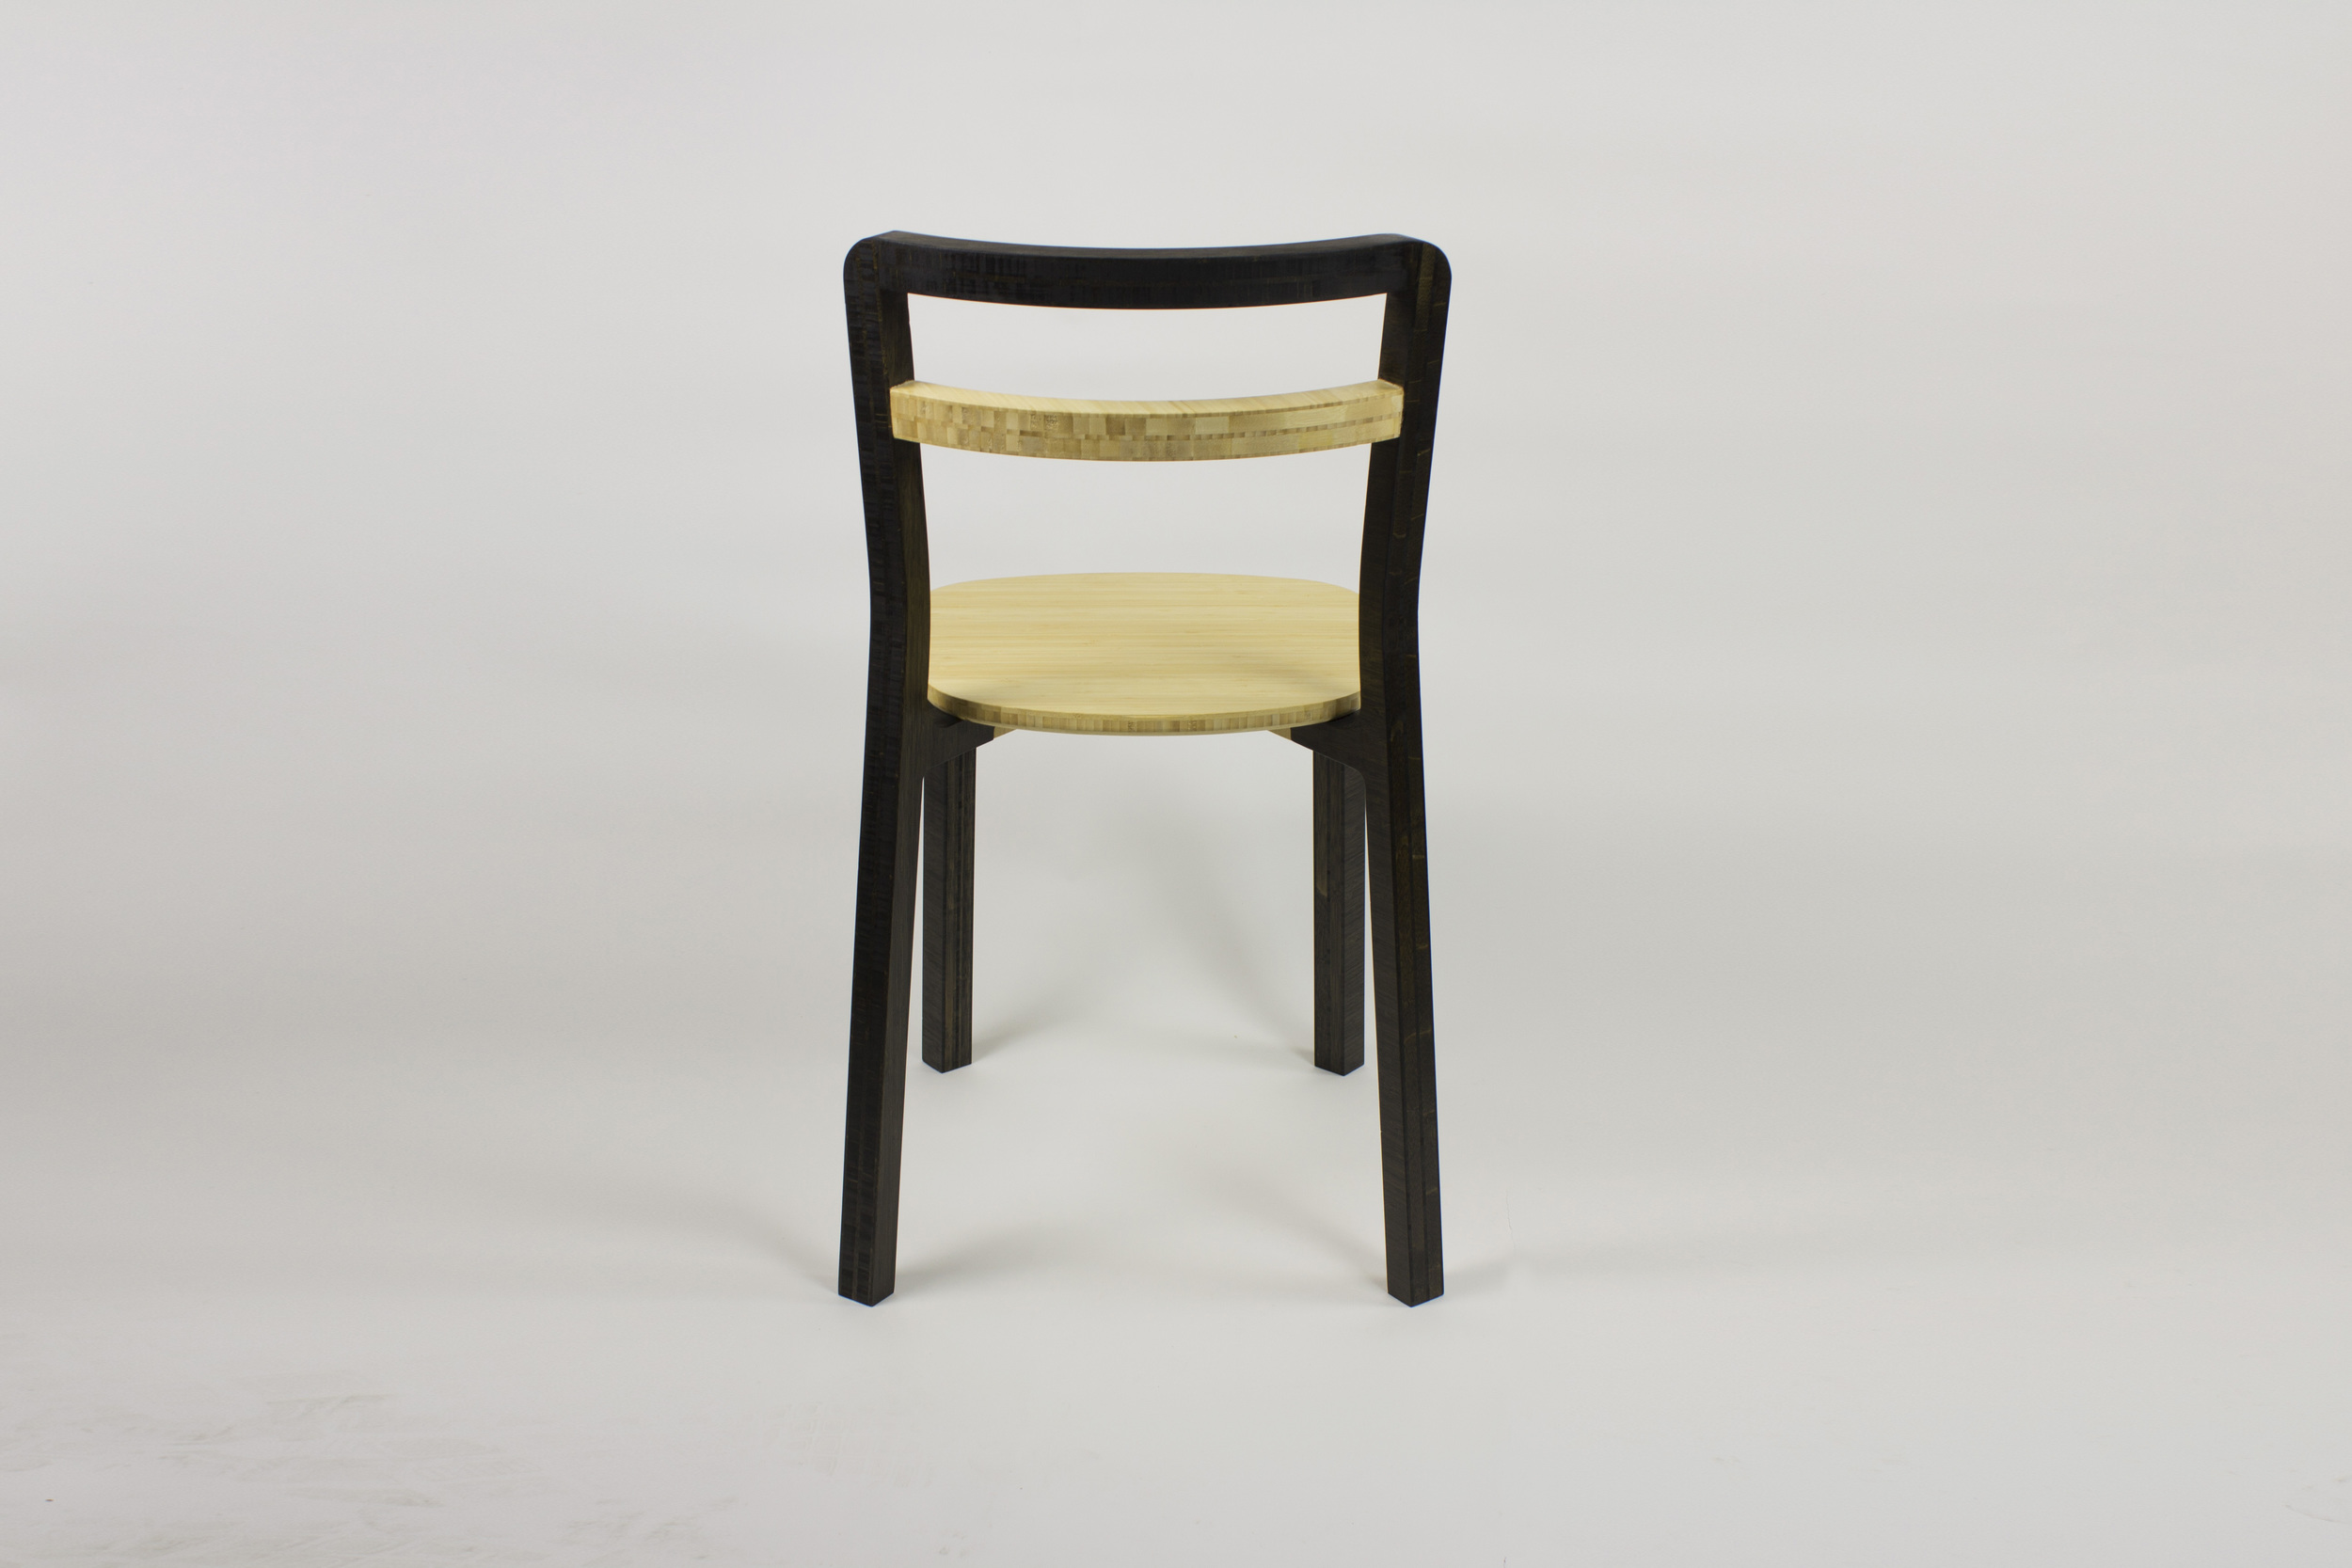 Boo_DiningChair__BenTovimDesign1.jpg